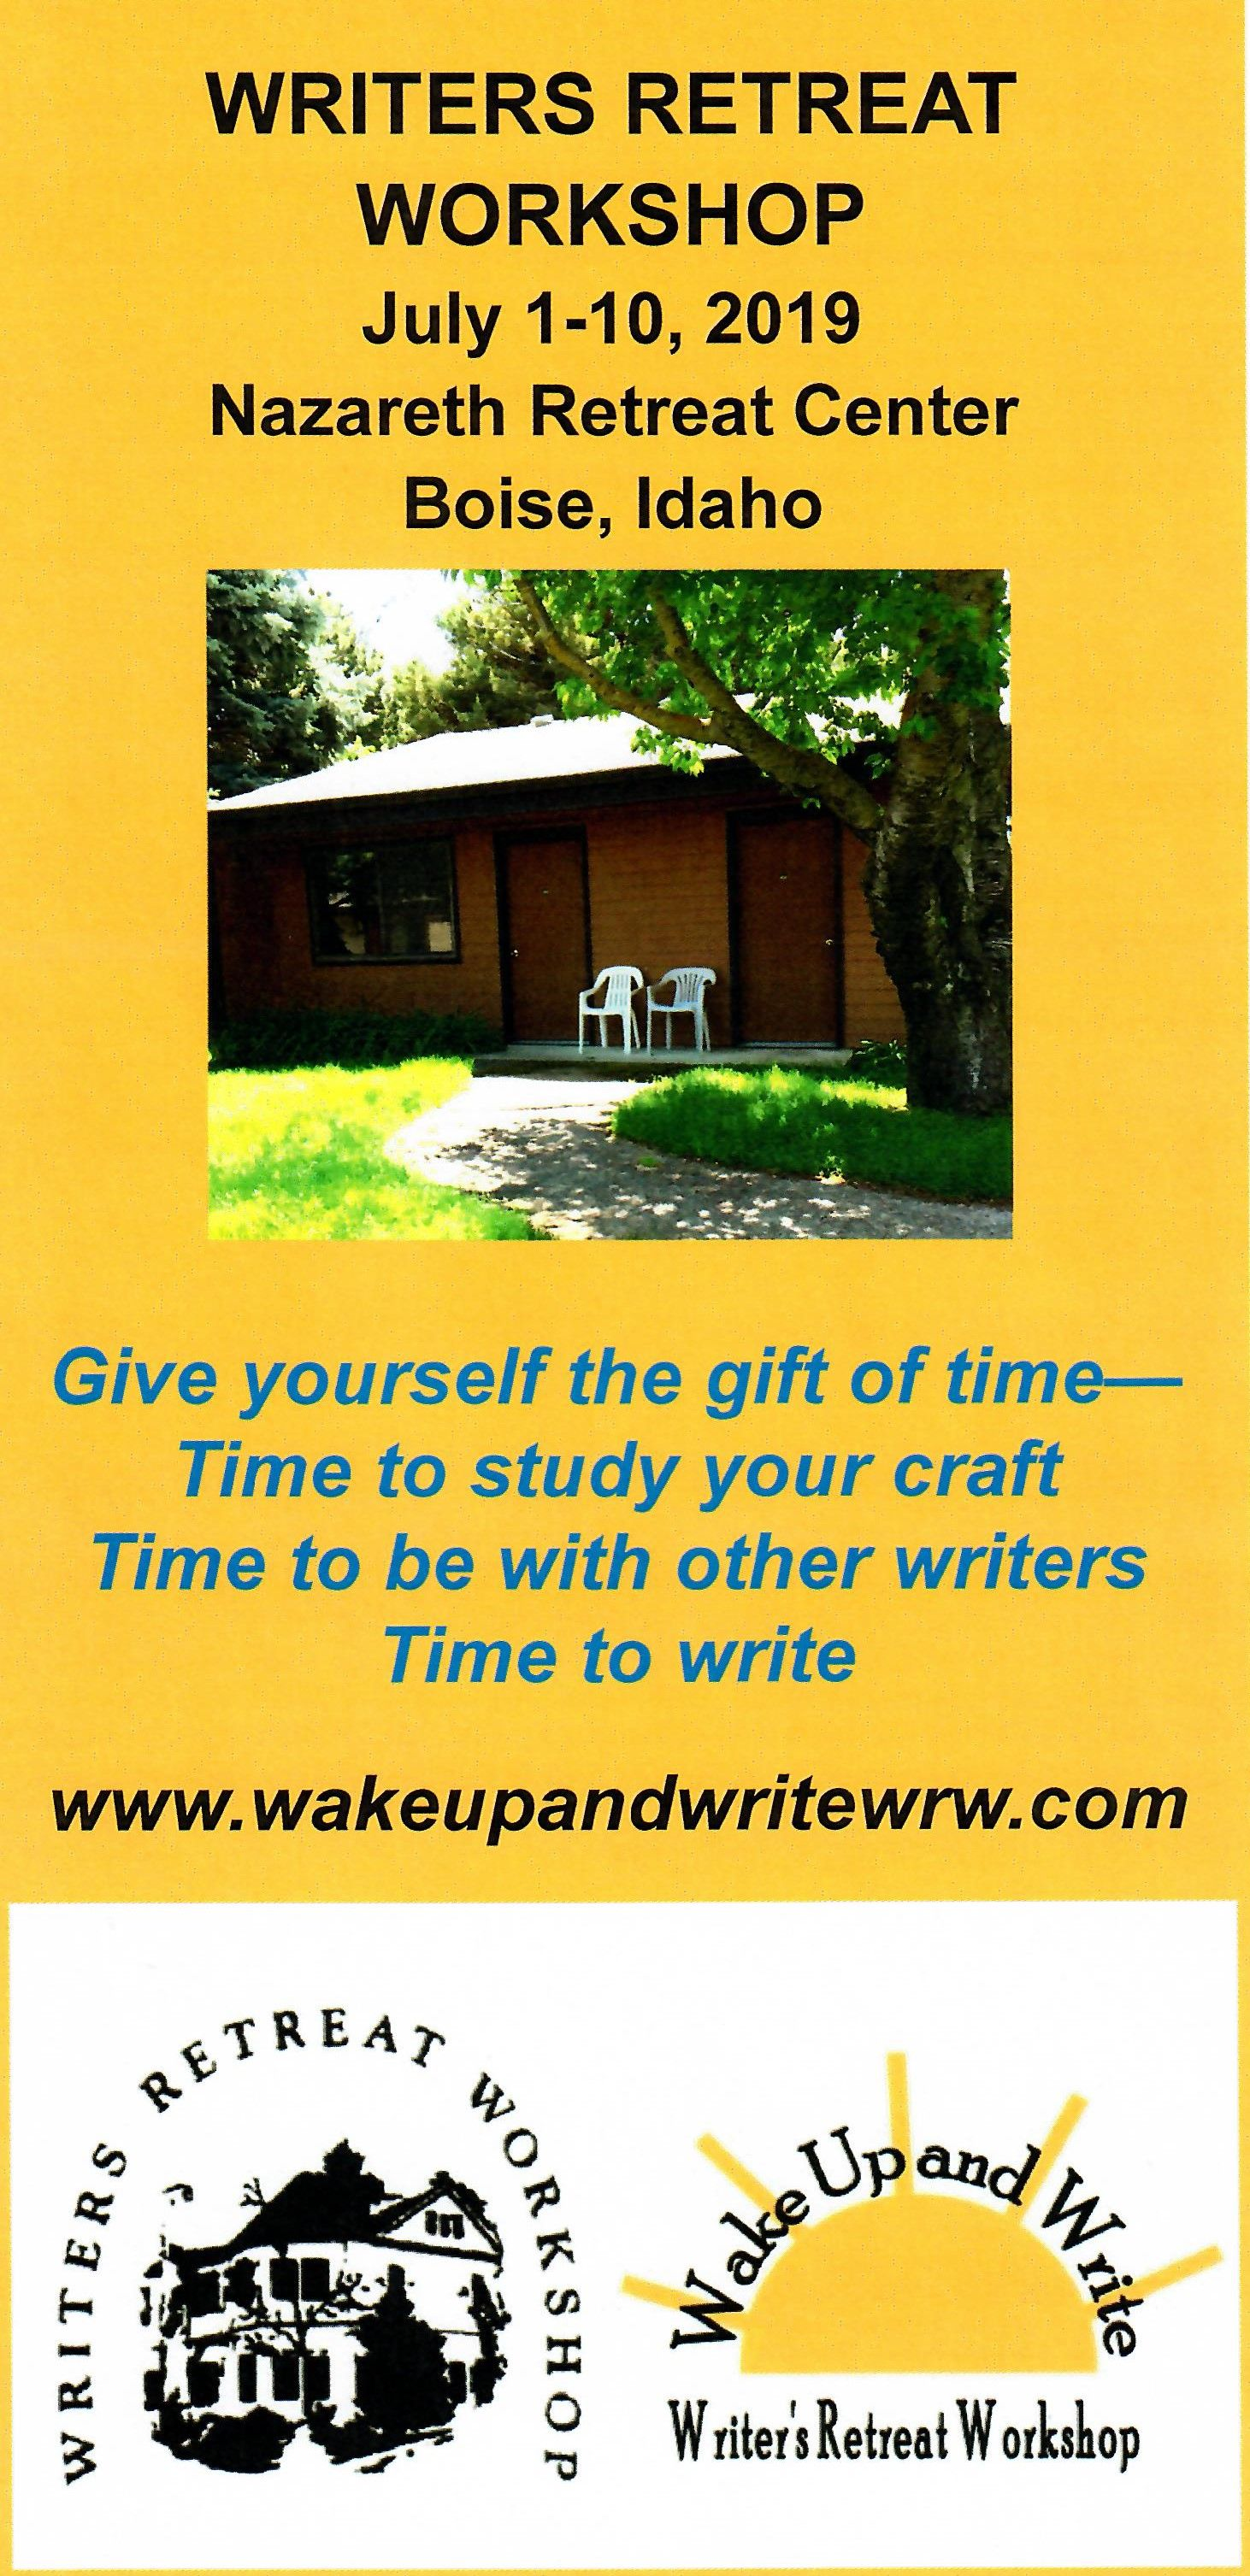 Writers Retreat Workshop